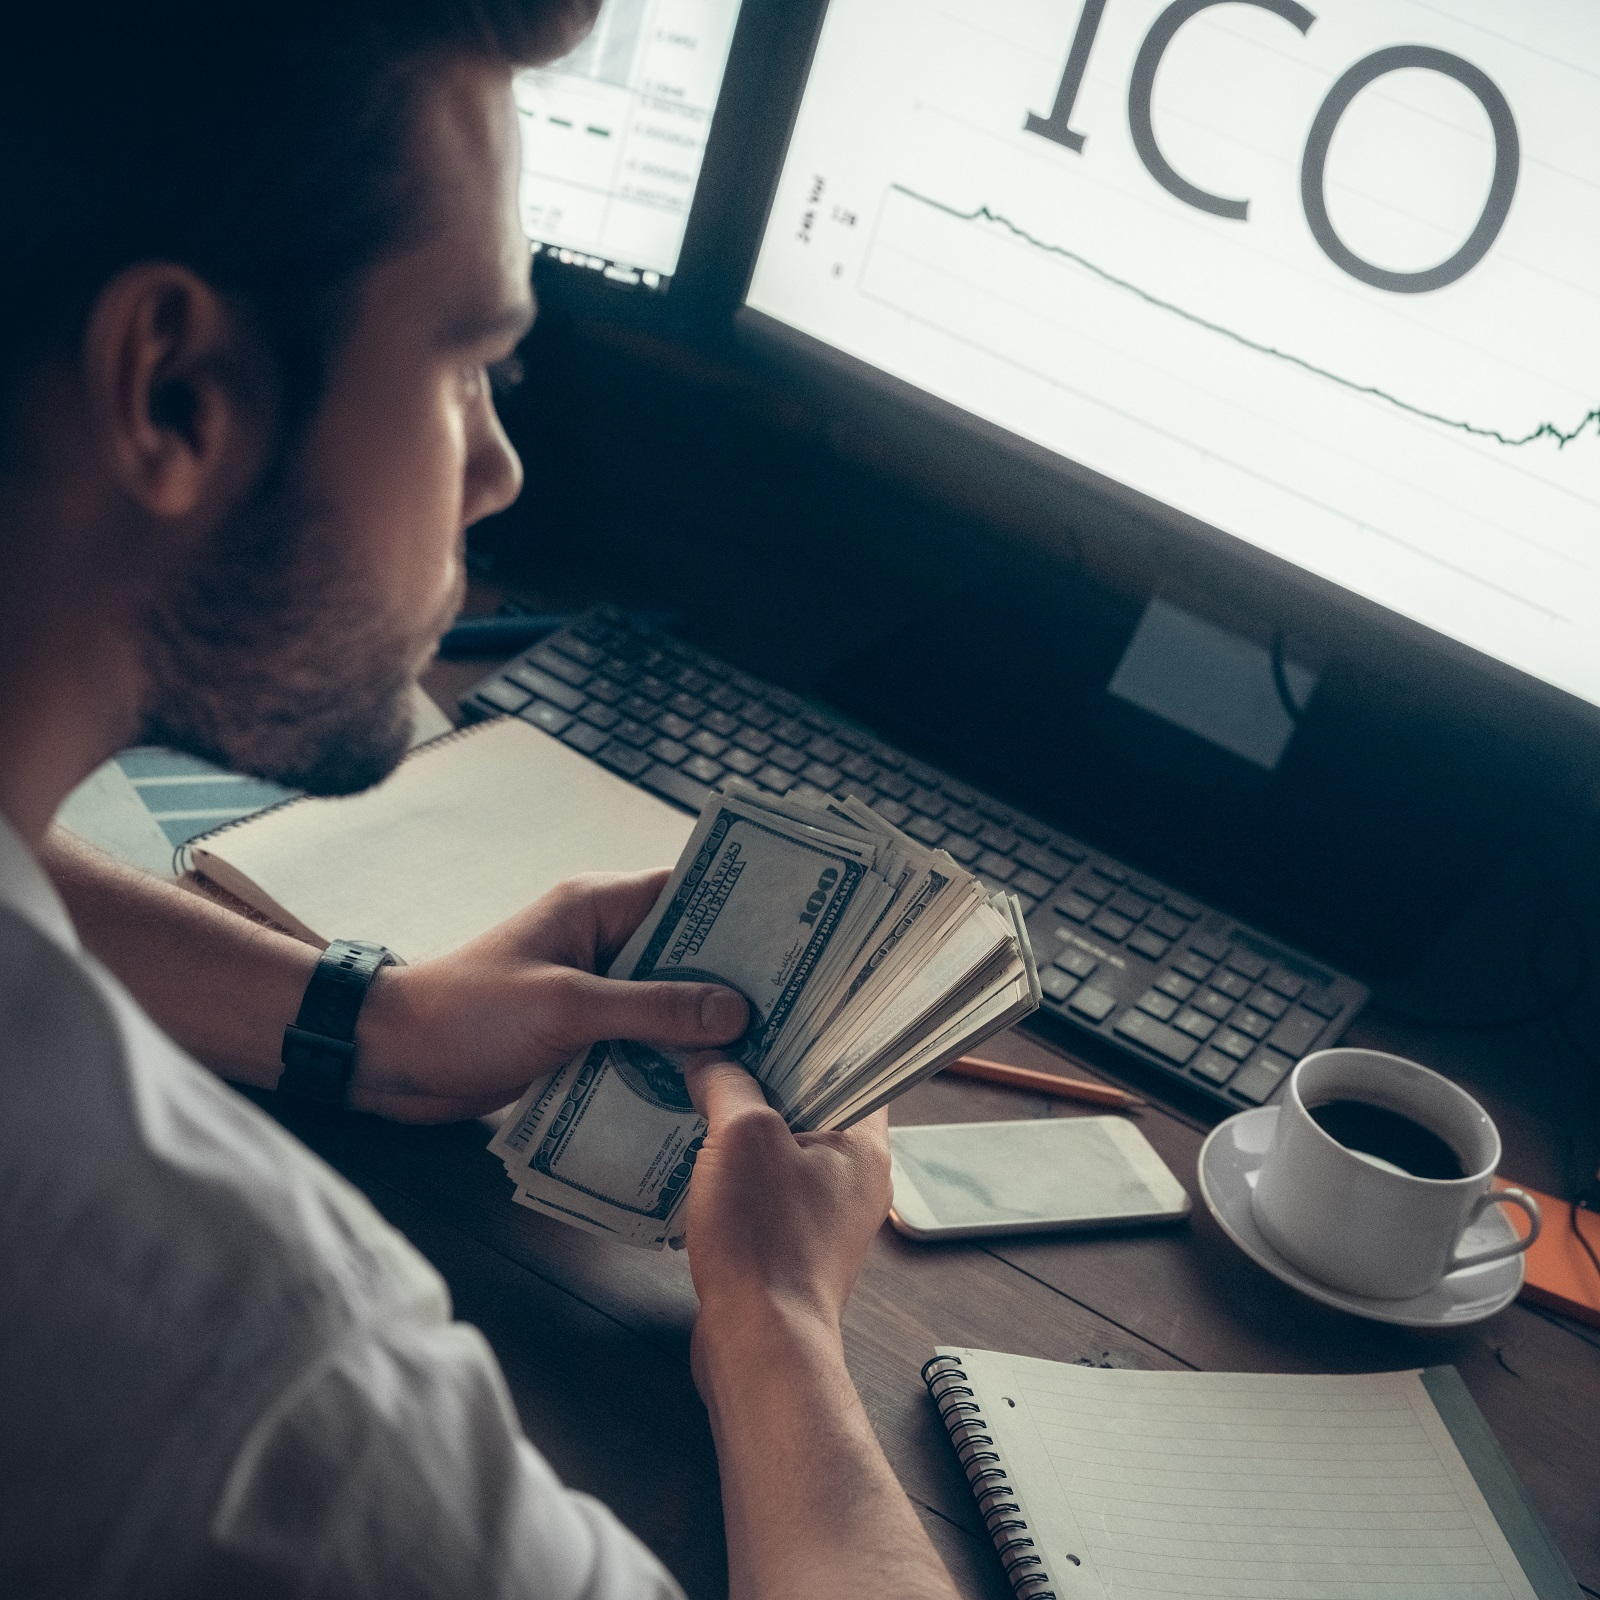 Russians to Be Allowed to Invest in ICOs up to $9,000 per Year